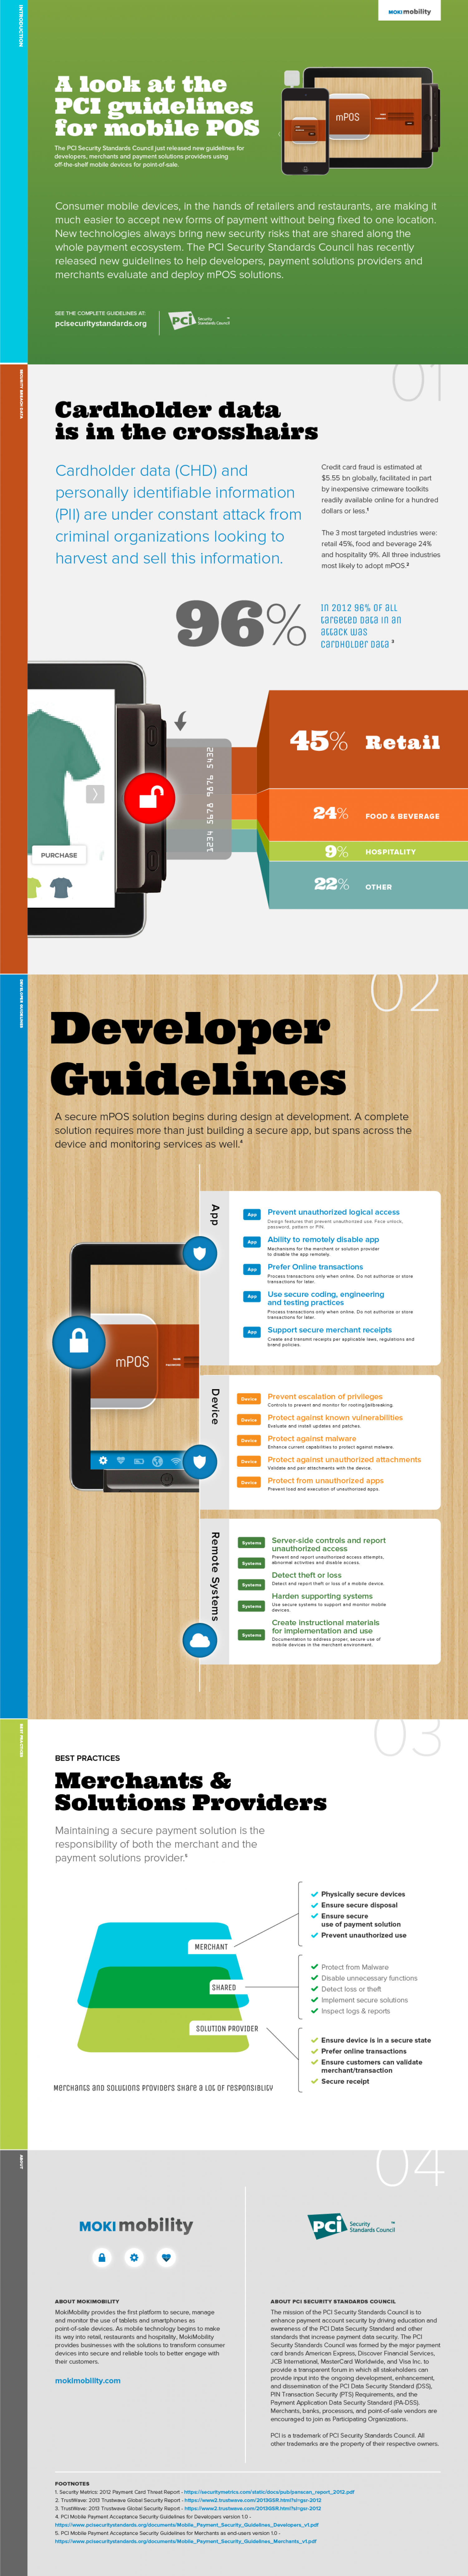 A look at the security guidelines for mobile POS Infographic